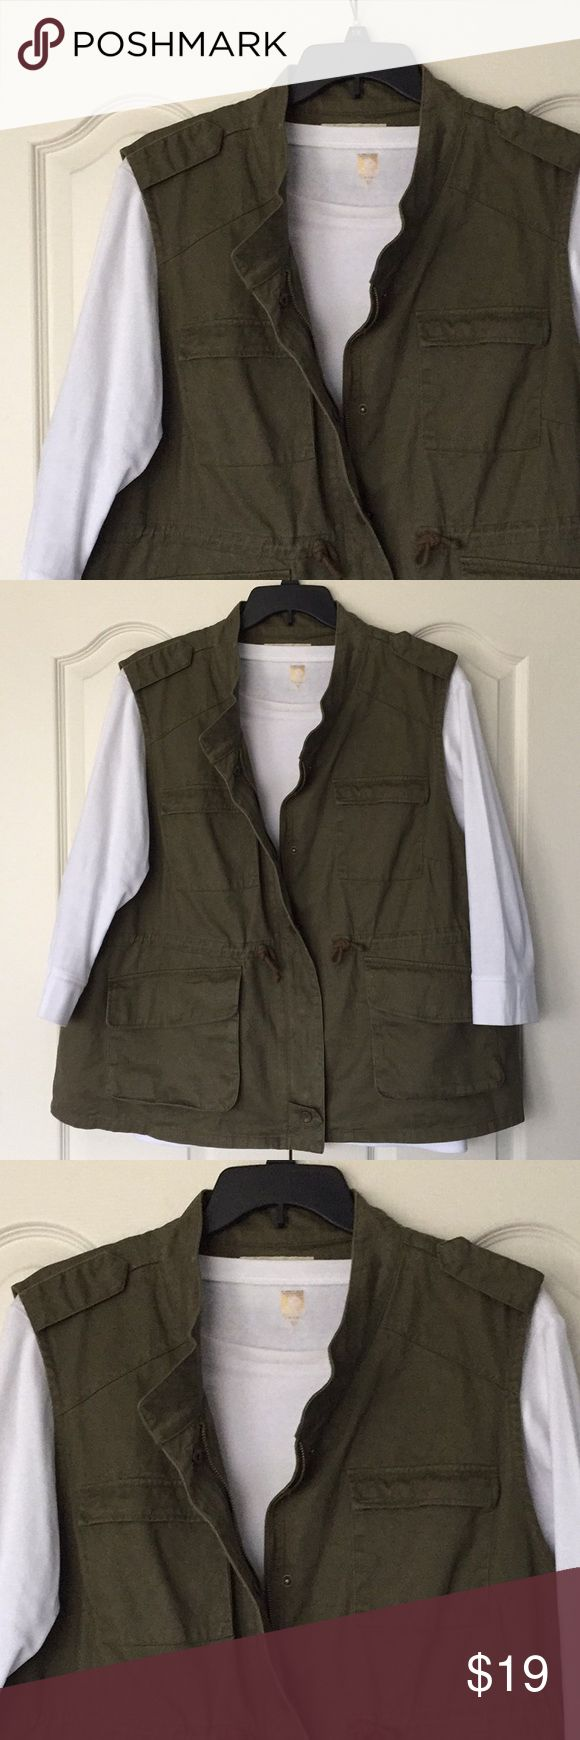 Olive green vest with zipper and snaps Olive green vest with zipper and snaps also has a cinching cord at waist.  Armpit to armpit is 27.5 inches and length is 28.5 inches. Worn twice.  Great addition to your closet! Per Se Jackets & Coats Vests